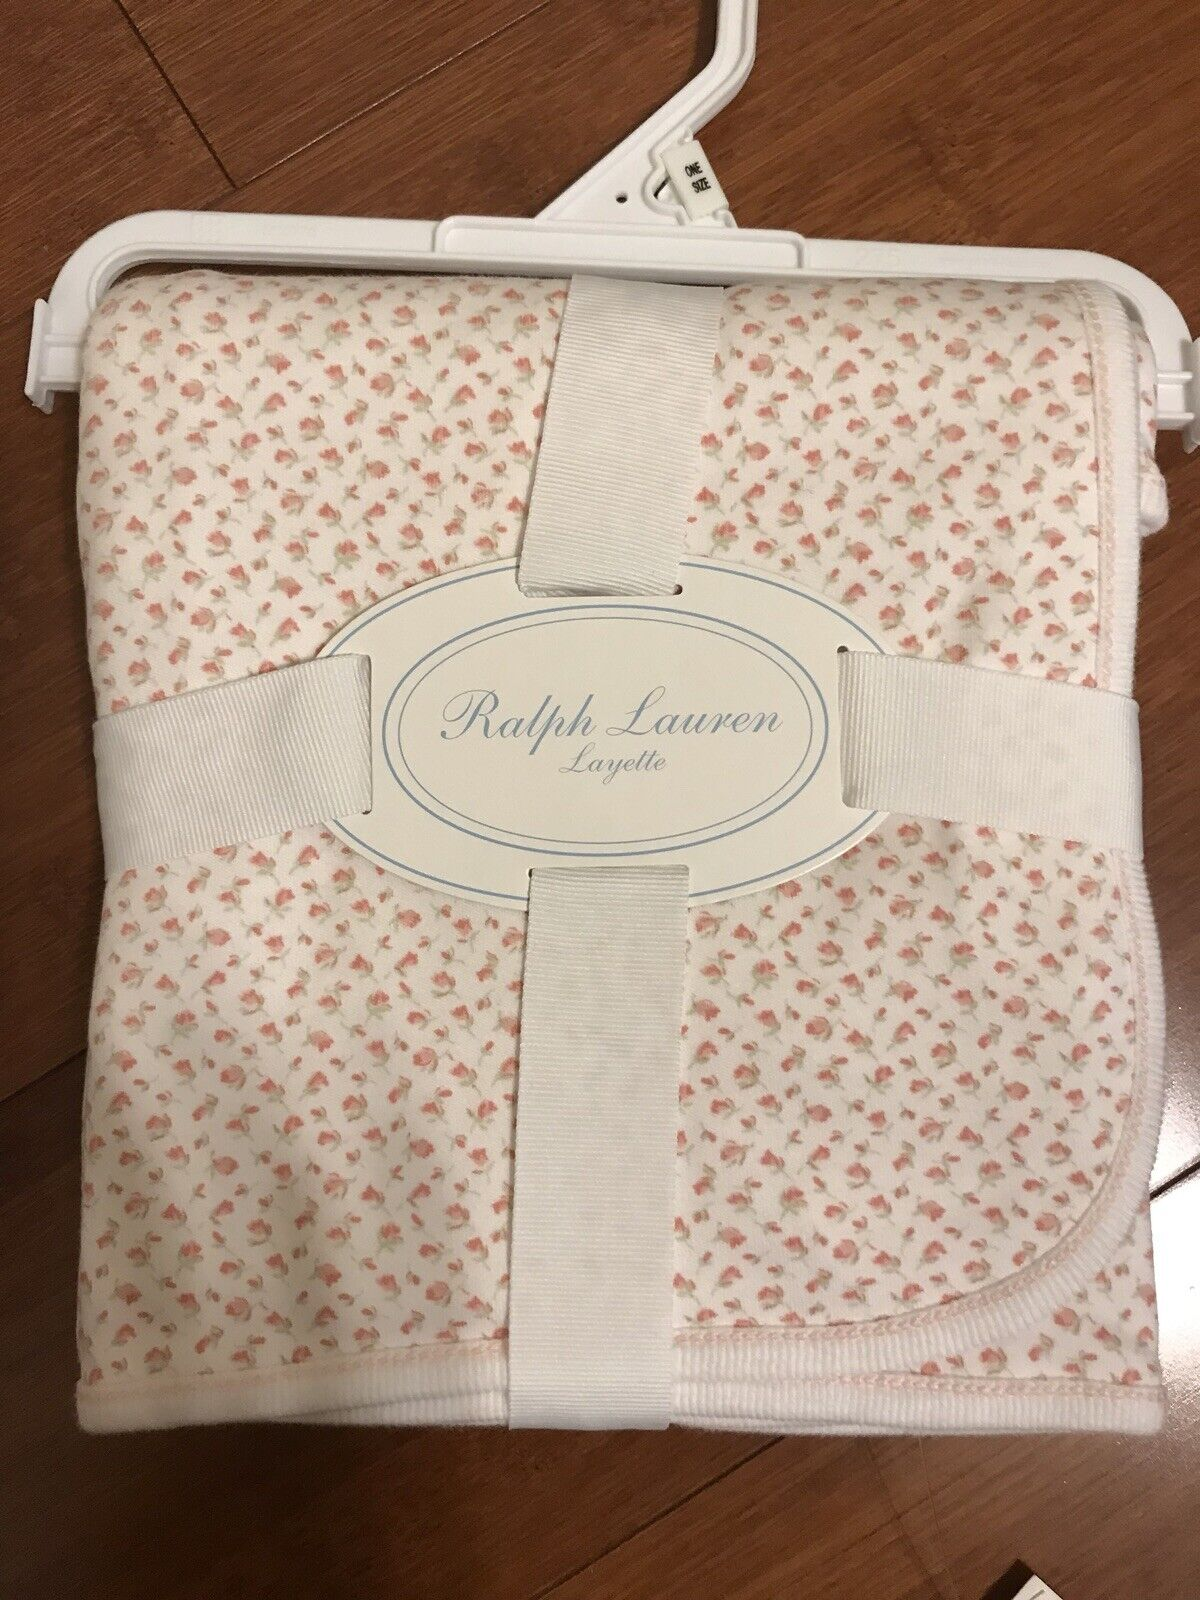 Baby Blanket Quilt Minky 2 layers 34x28 inches Receiving,Crib Stroller